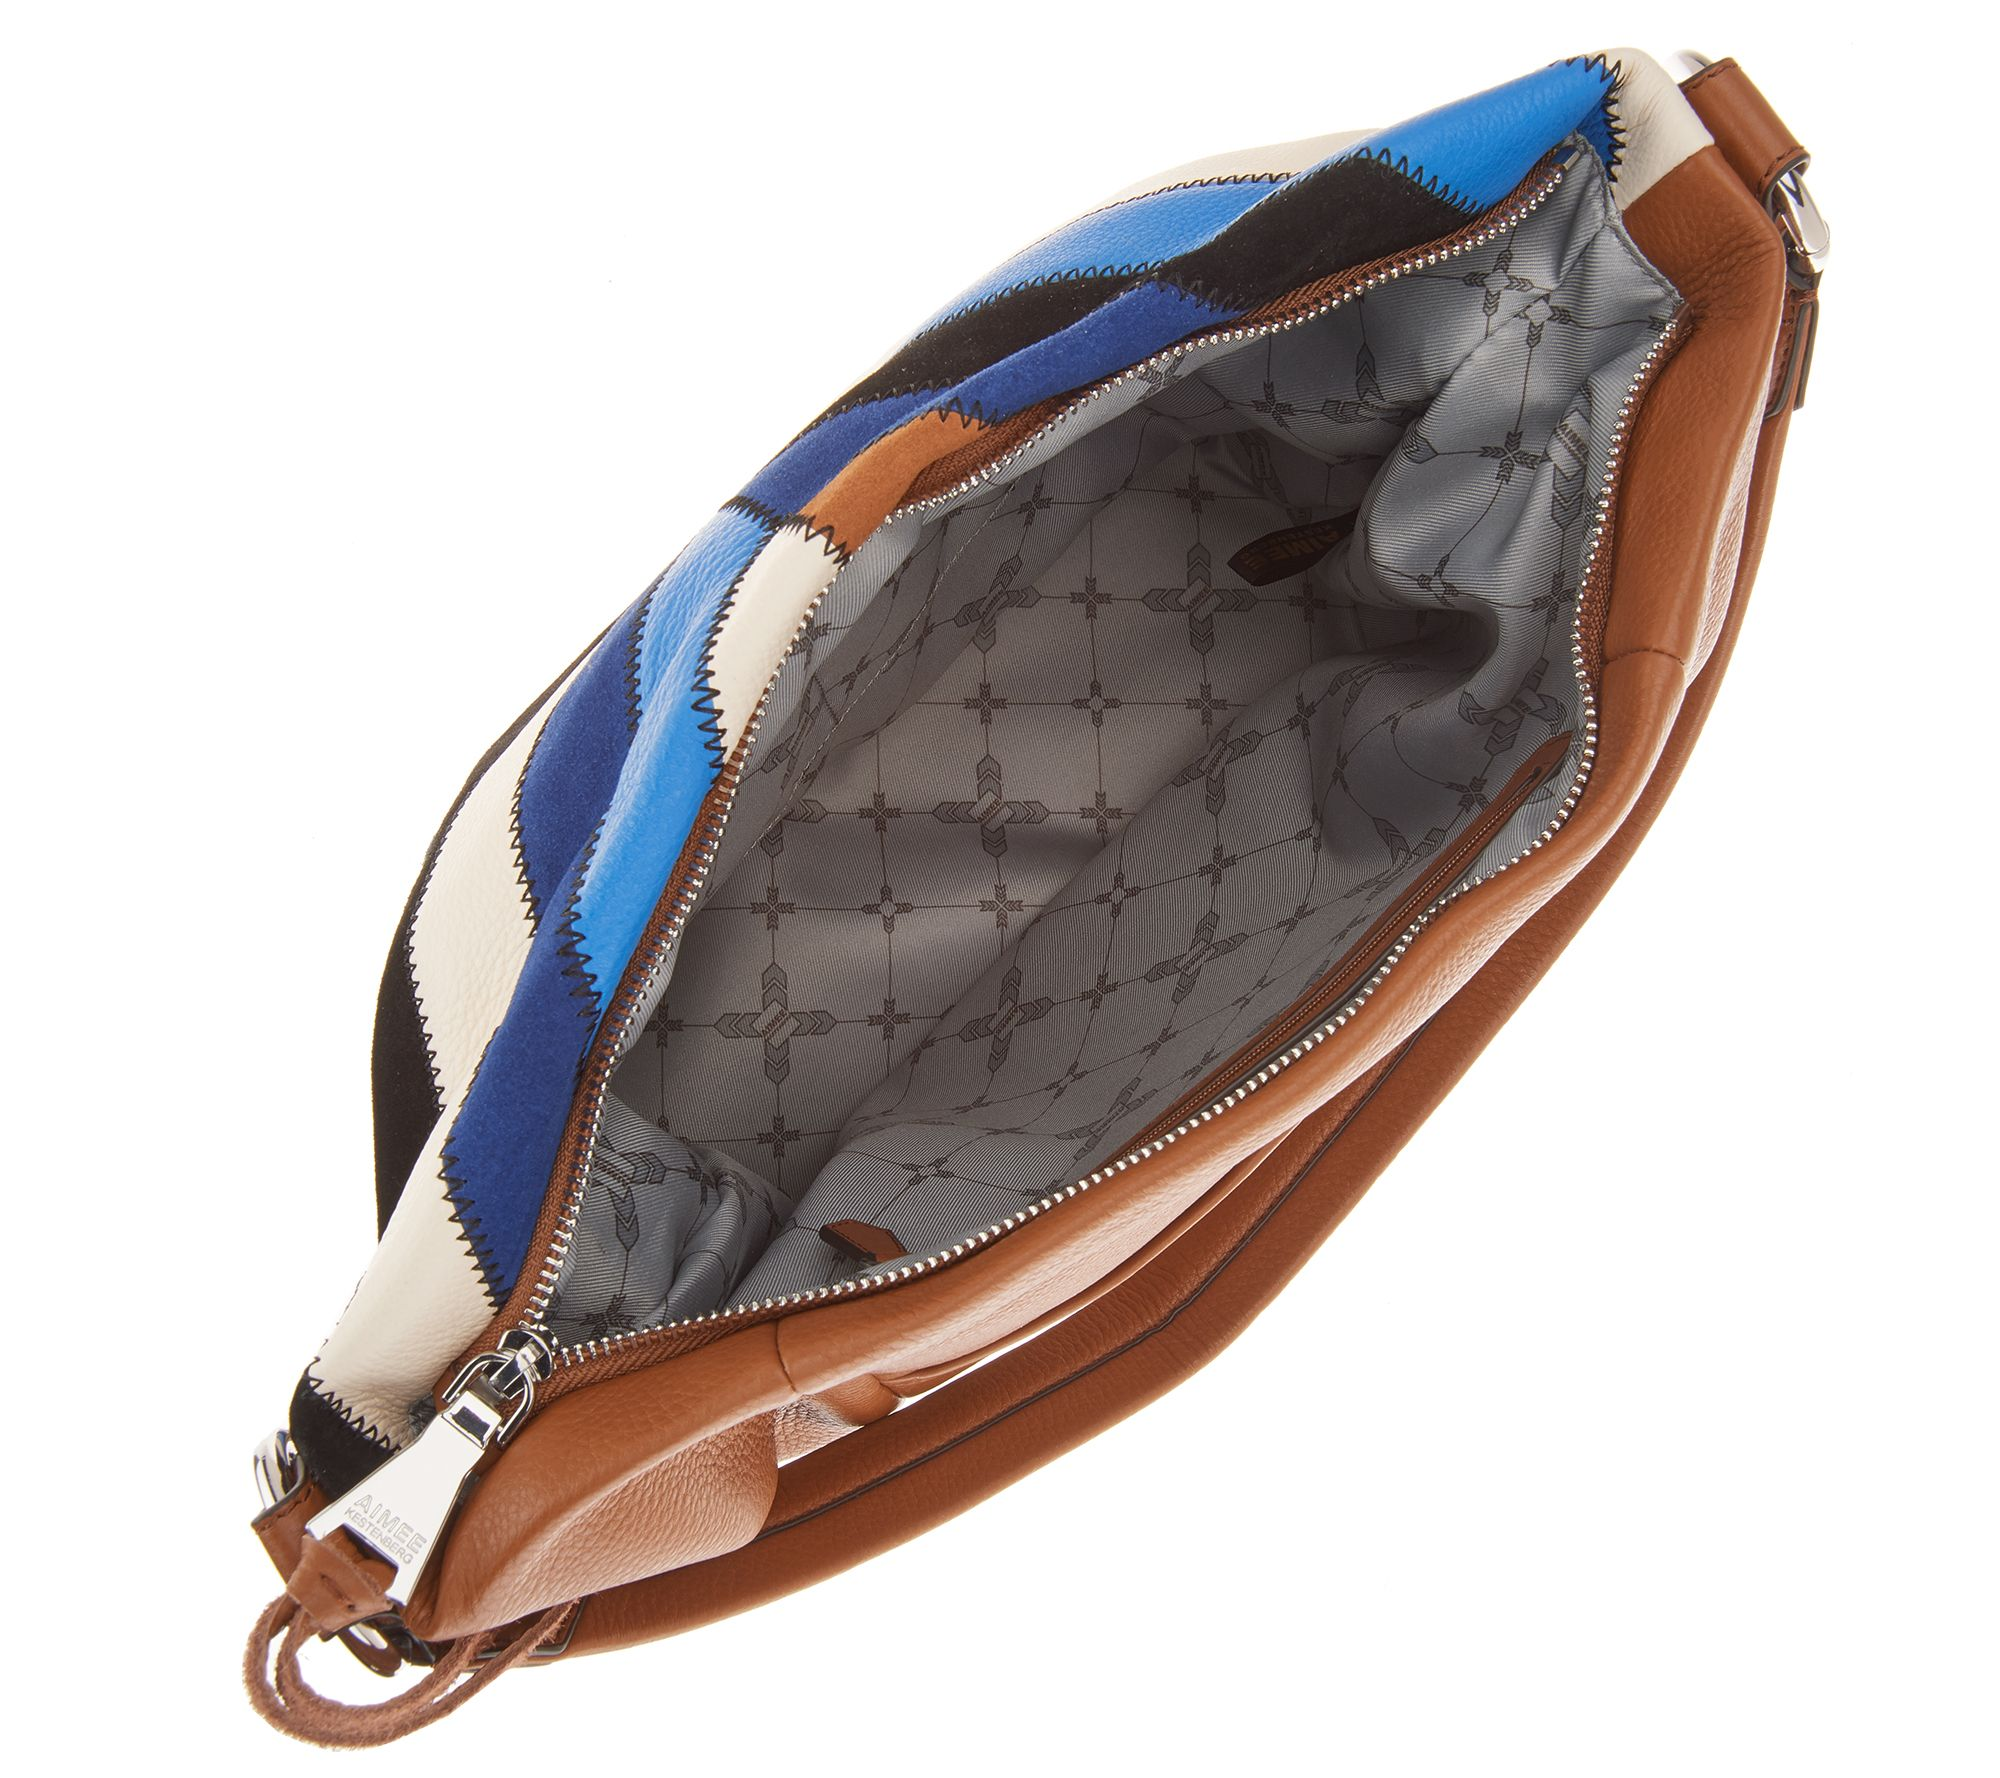 4388954d868 Aimee Kestenberg Pebble Leather Hobo - Tulum - Page 1 — QVC.com